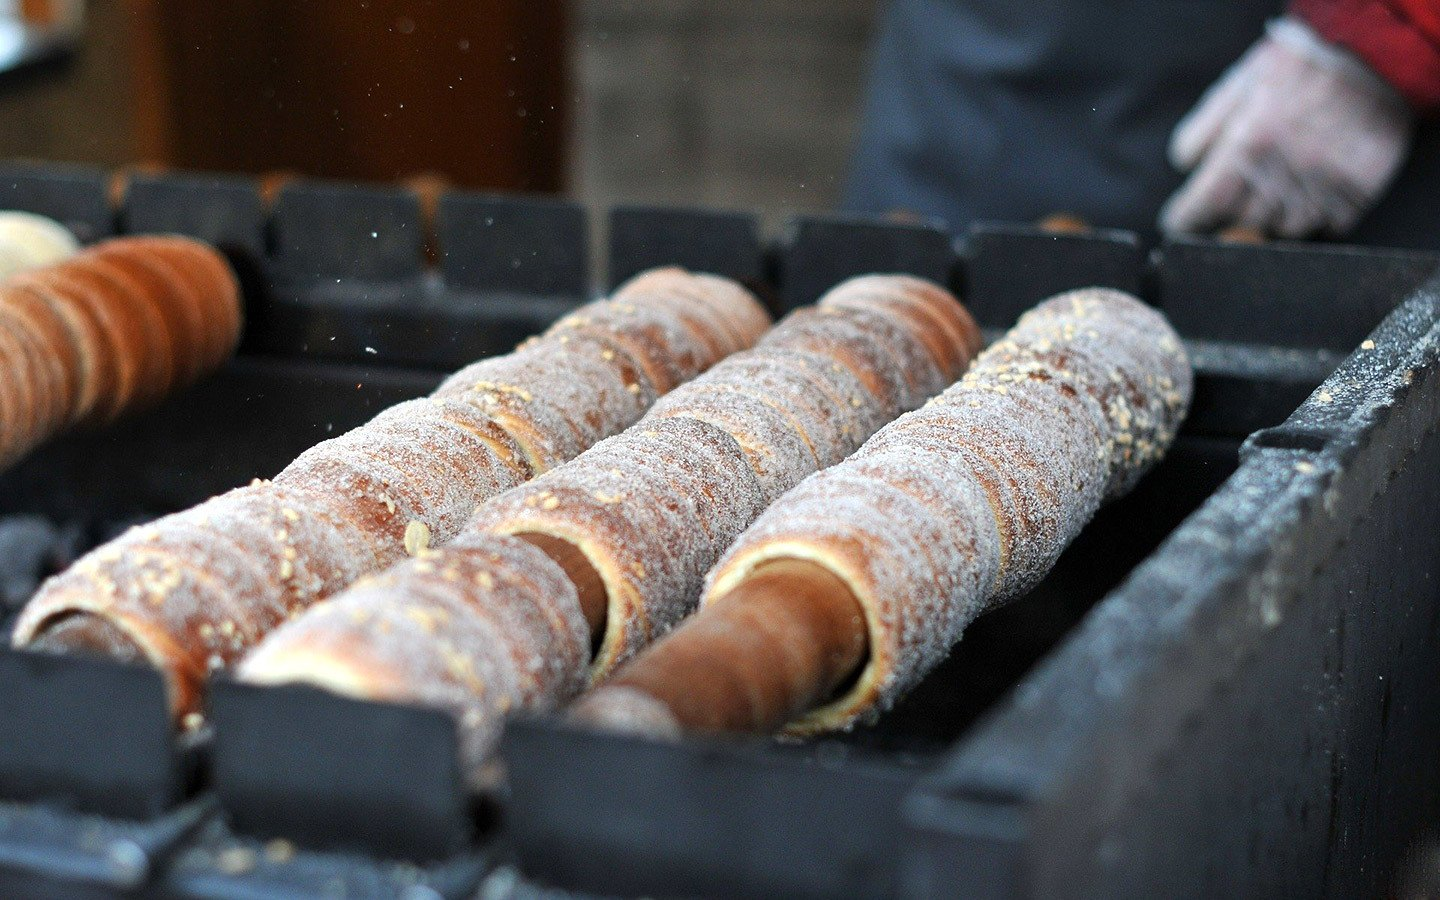 Chimney cakes (trdelnik) cooking in Prague